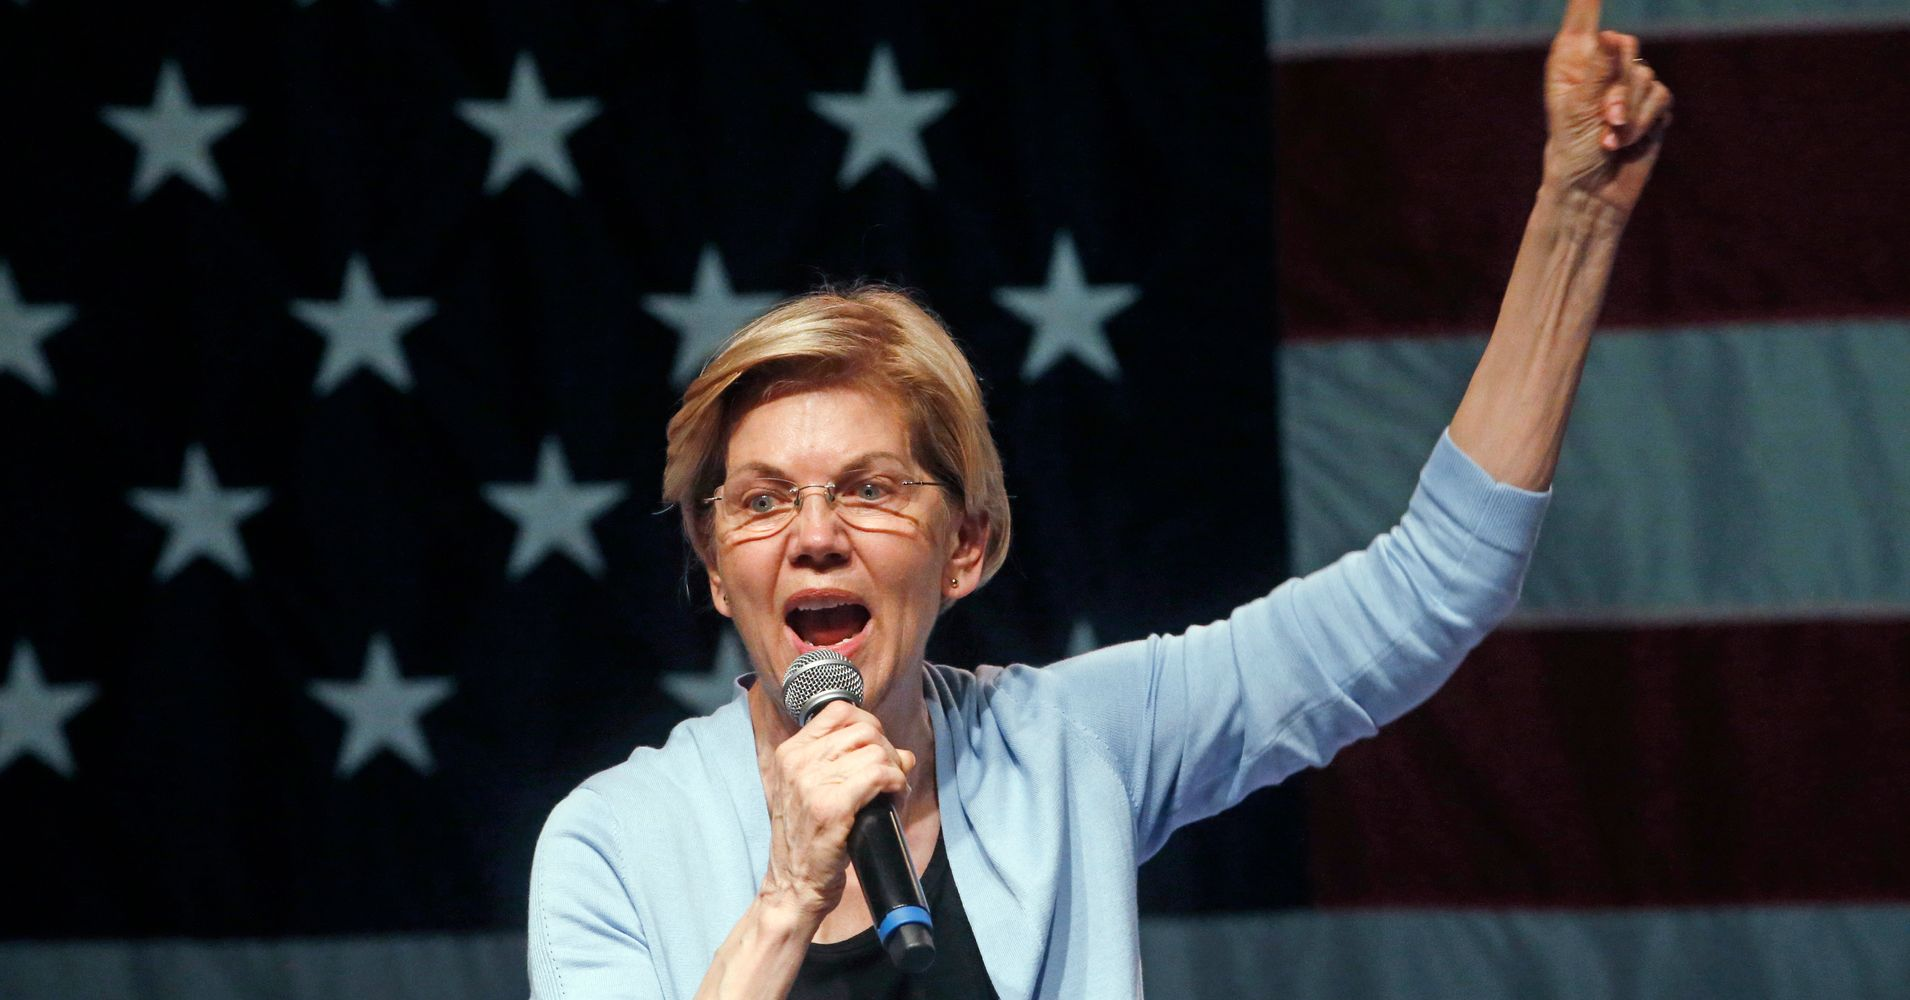 , New poll finds Warren within points of Biden and trouncing him in Likability – Harris did great too, The Politicus